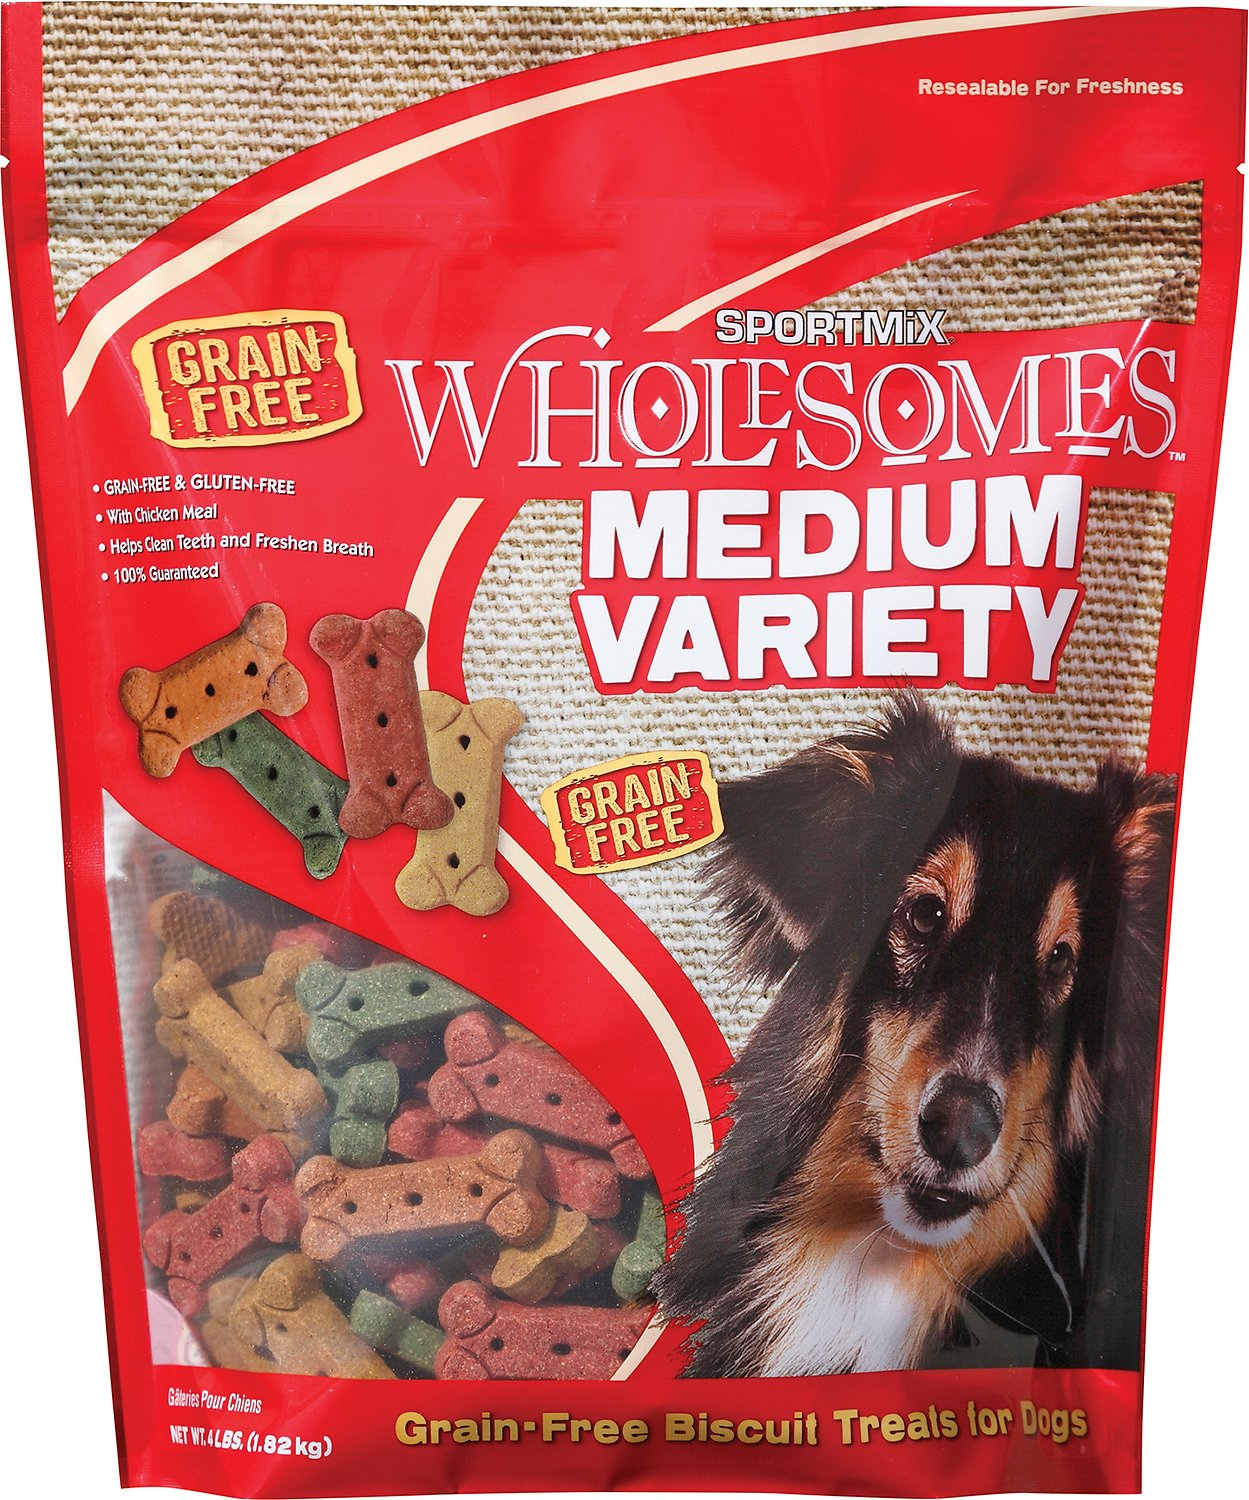 SPORTMiX Wholesomes Grain-Free Medium Variety Biscuit Dog Treats, 4-lb bag Image